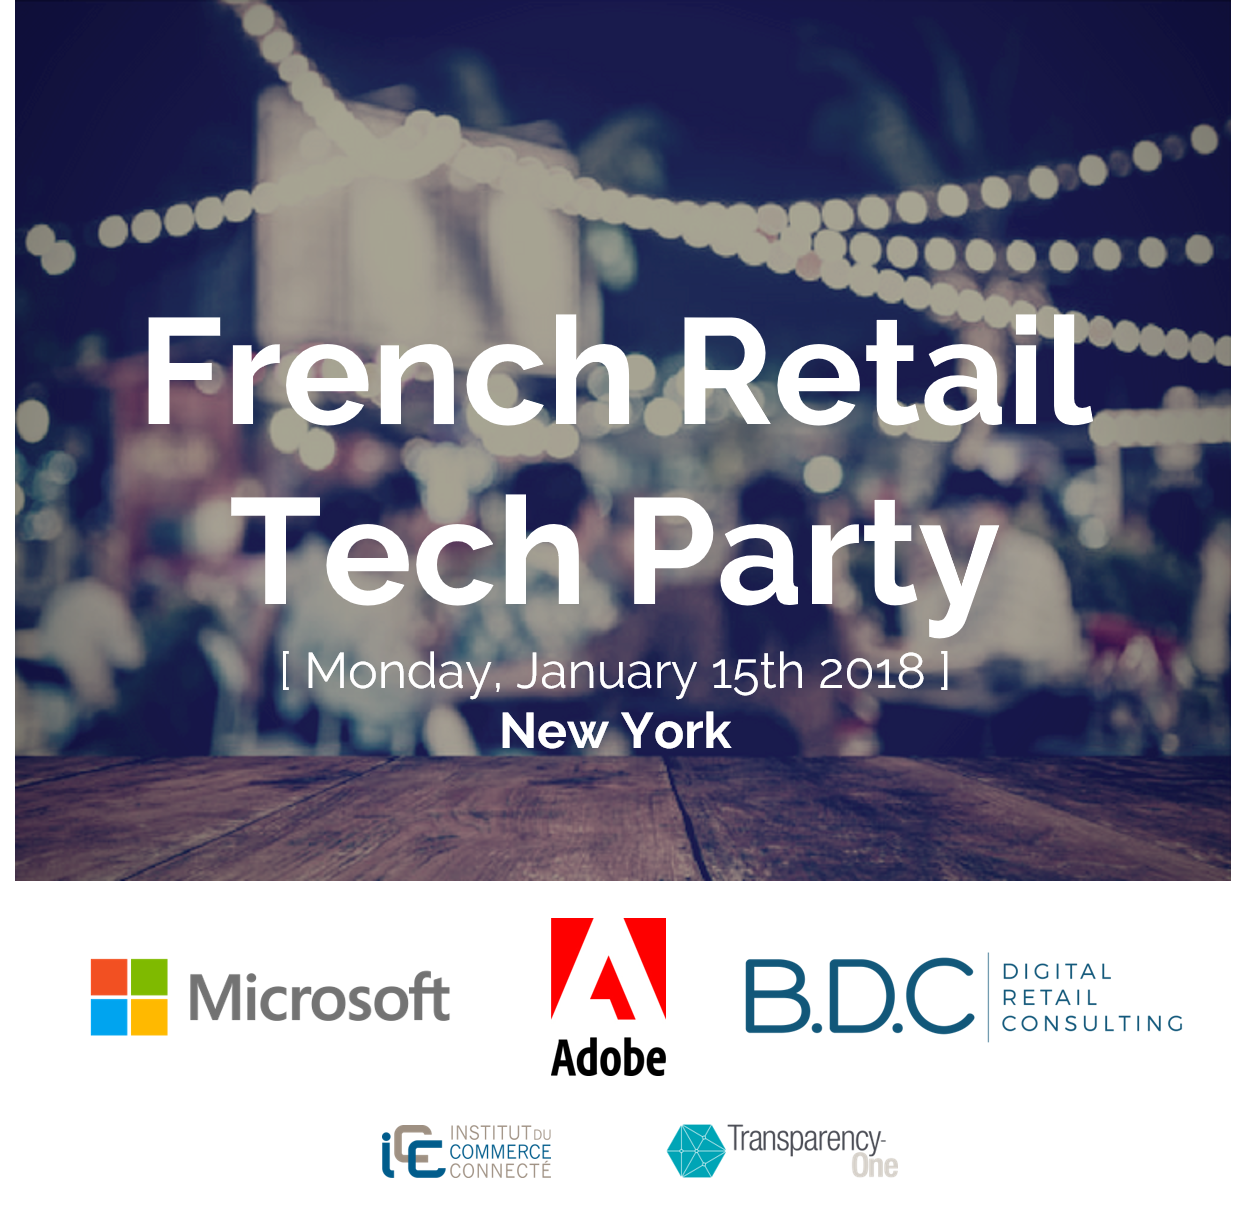 B.D.C. Microsoft Adobe French Retail Tech Party NRF2018 - B.D.C., Microsoft & Adobe organize the French Retail Tech Party during NRF 2018